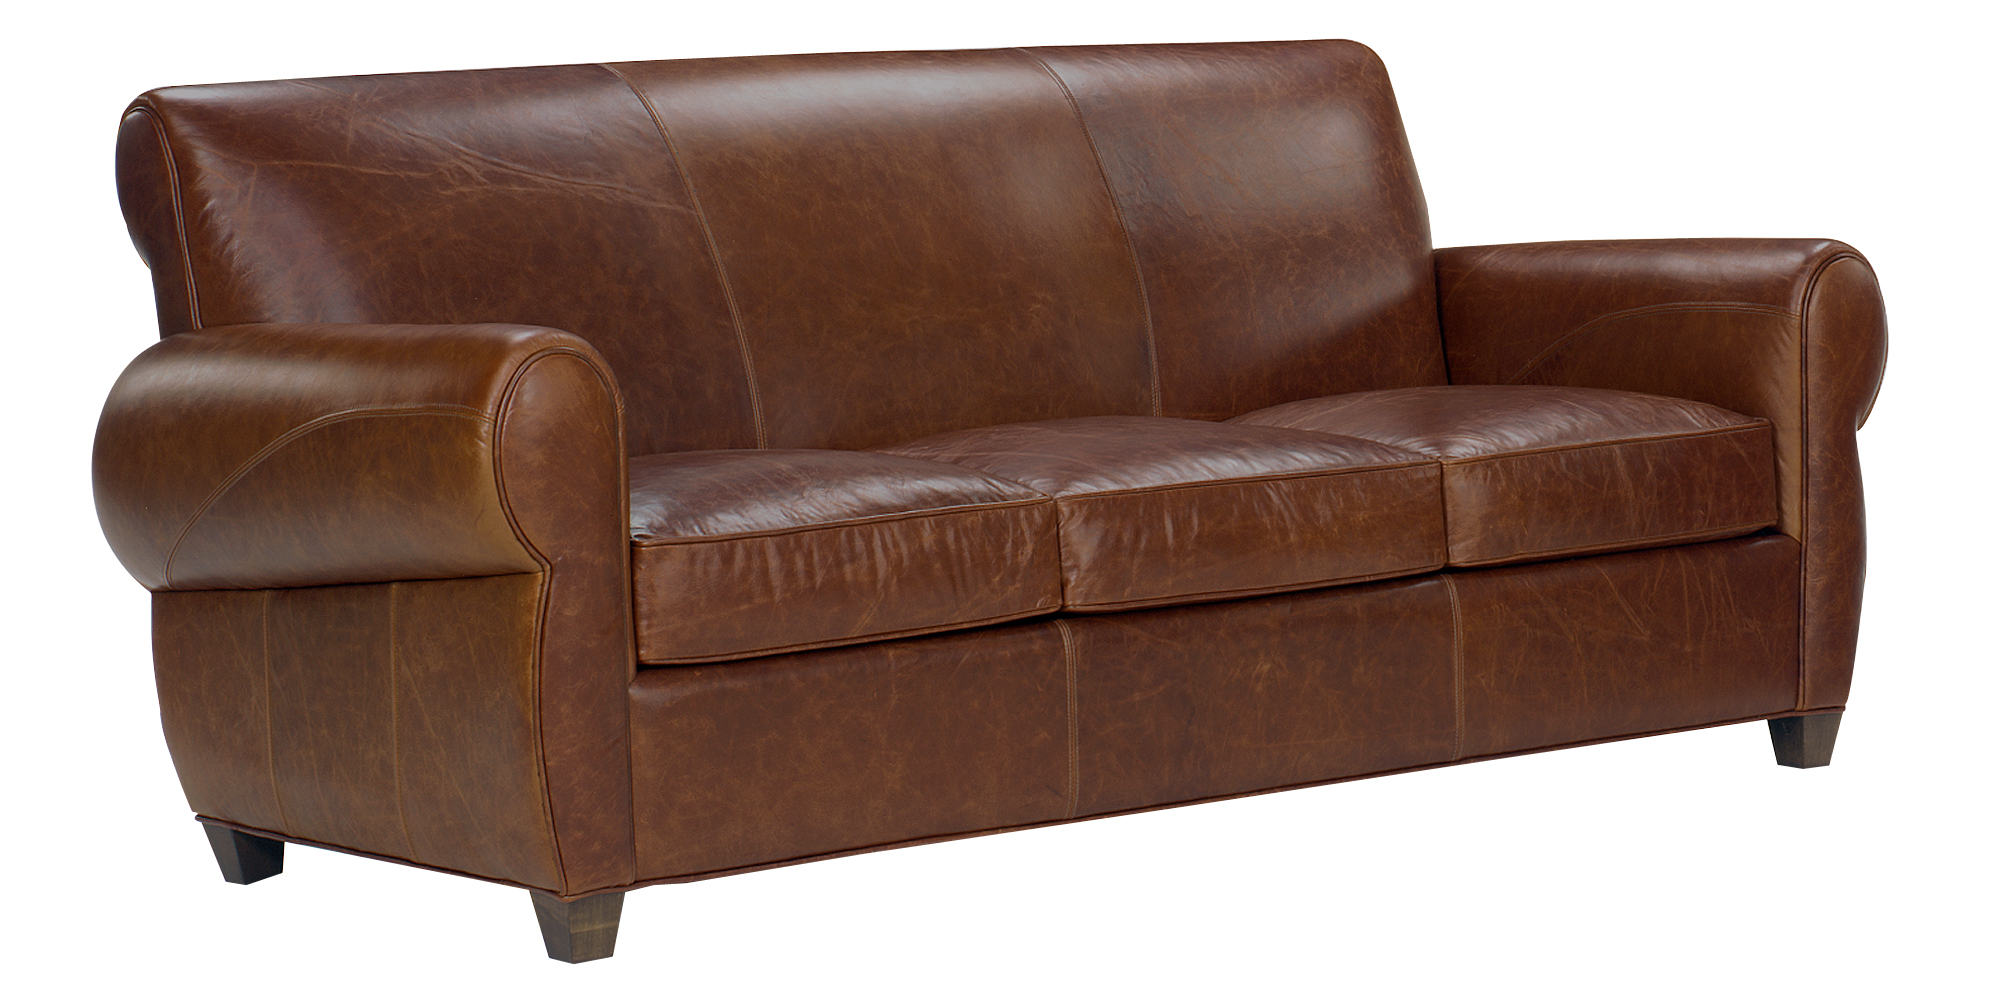 Tight back rustic lodge leather furniture sofa collection for Furniture leather sofa